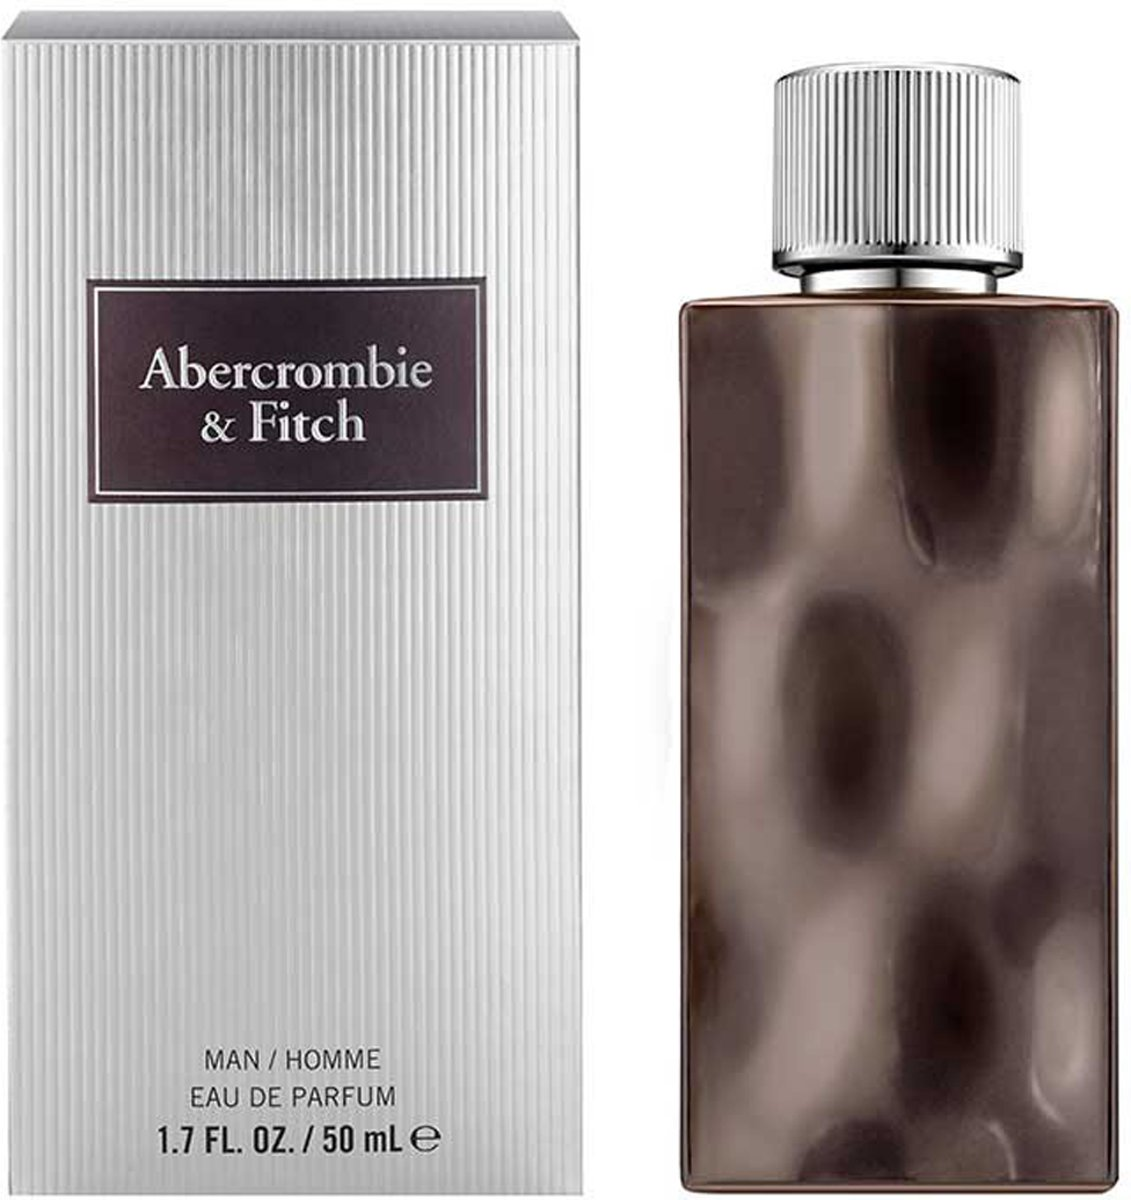 Abercrombie & Fitch First Instinct Extreme 50ml EDP Spray